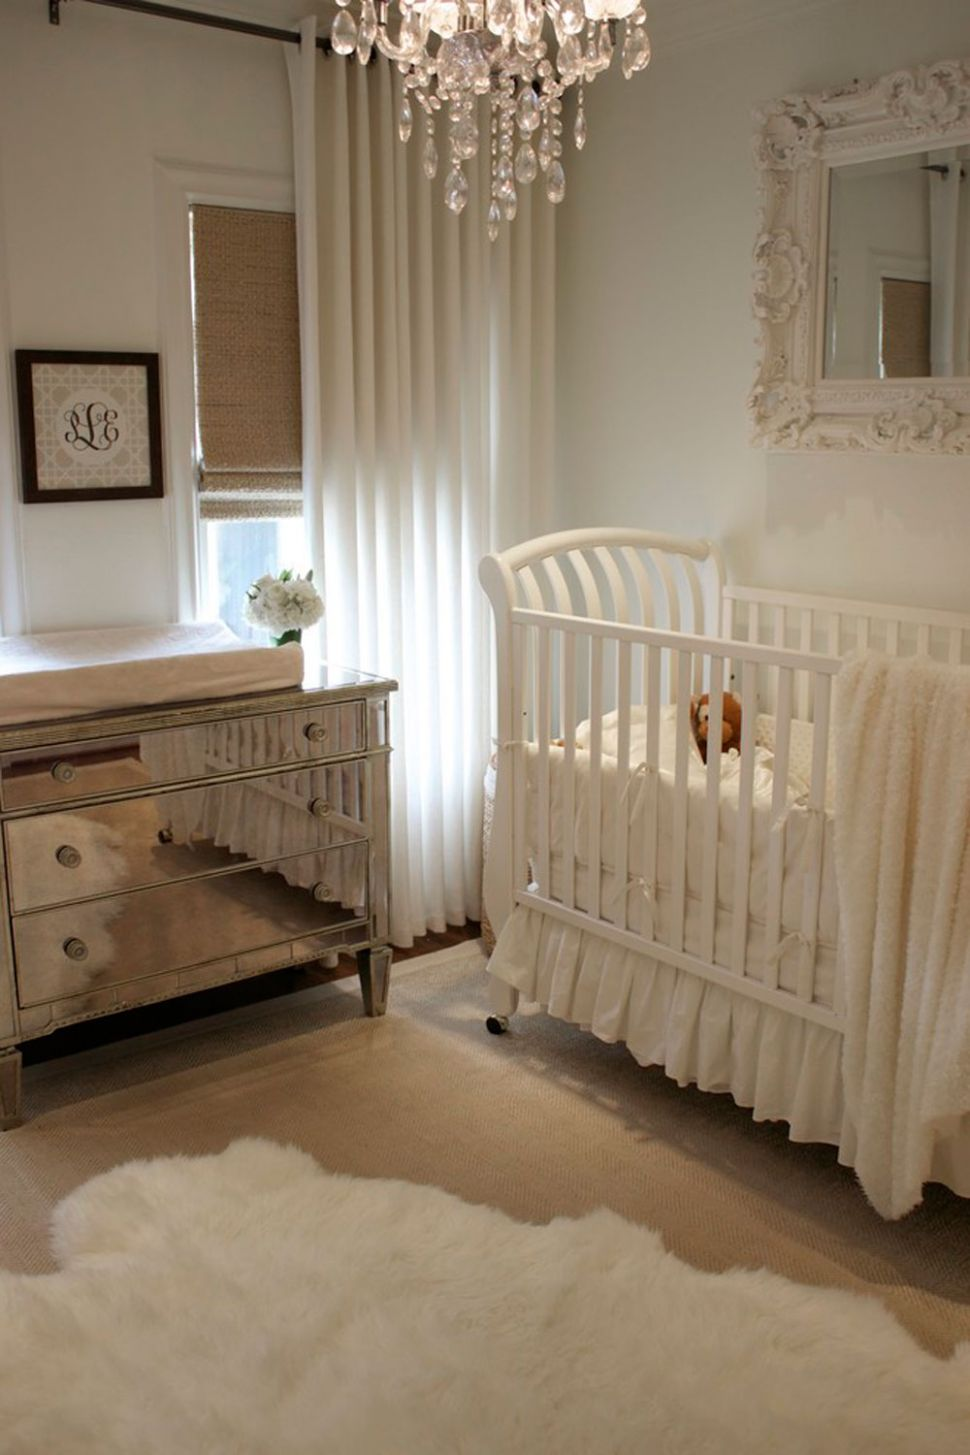 Color Psychology For Baby Rooms